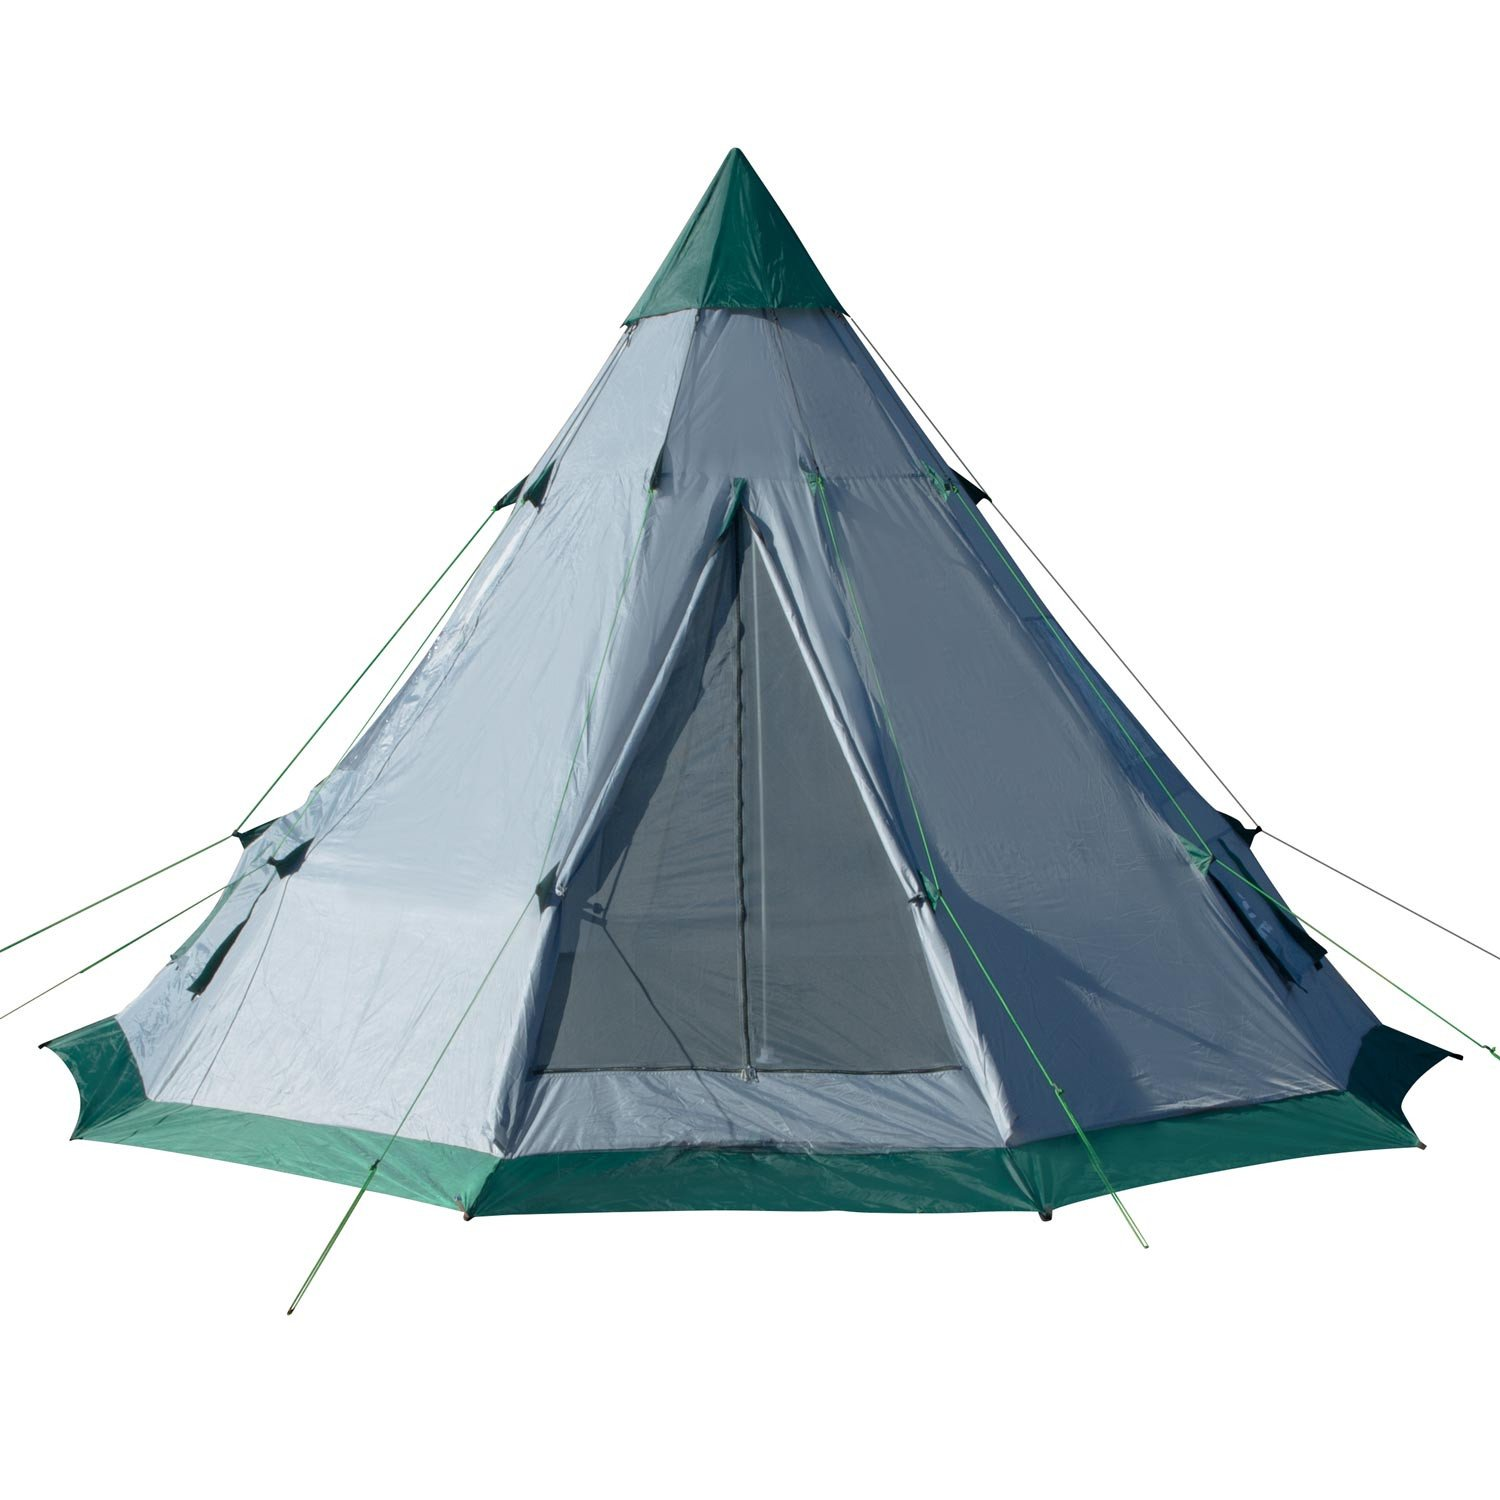 Tent Images